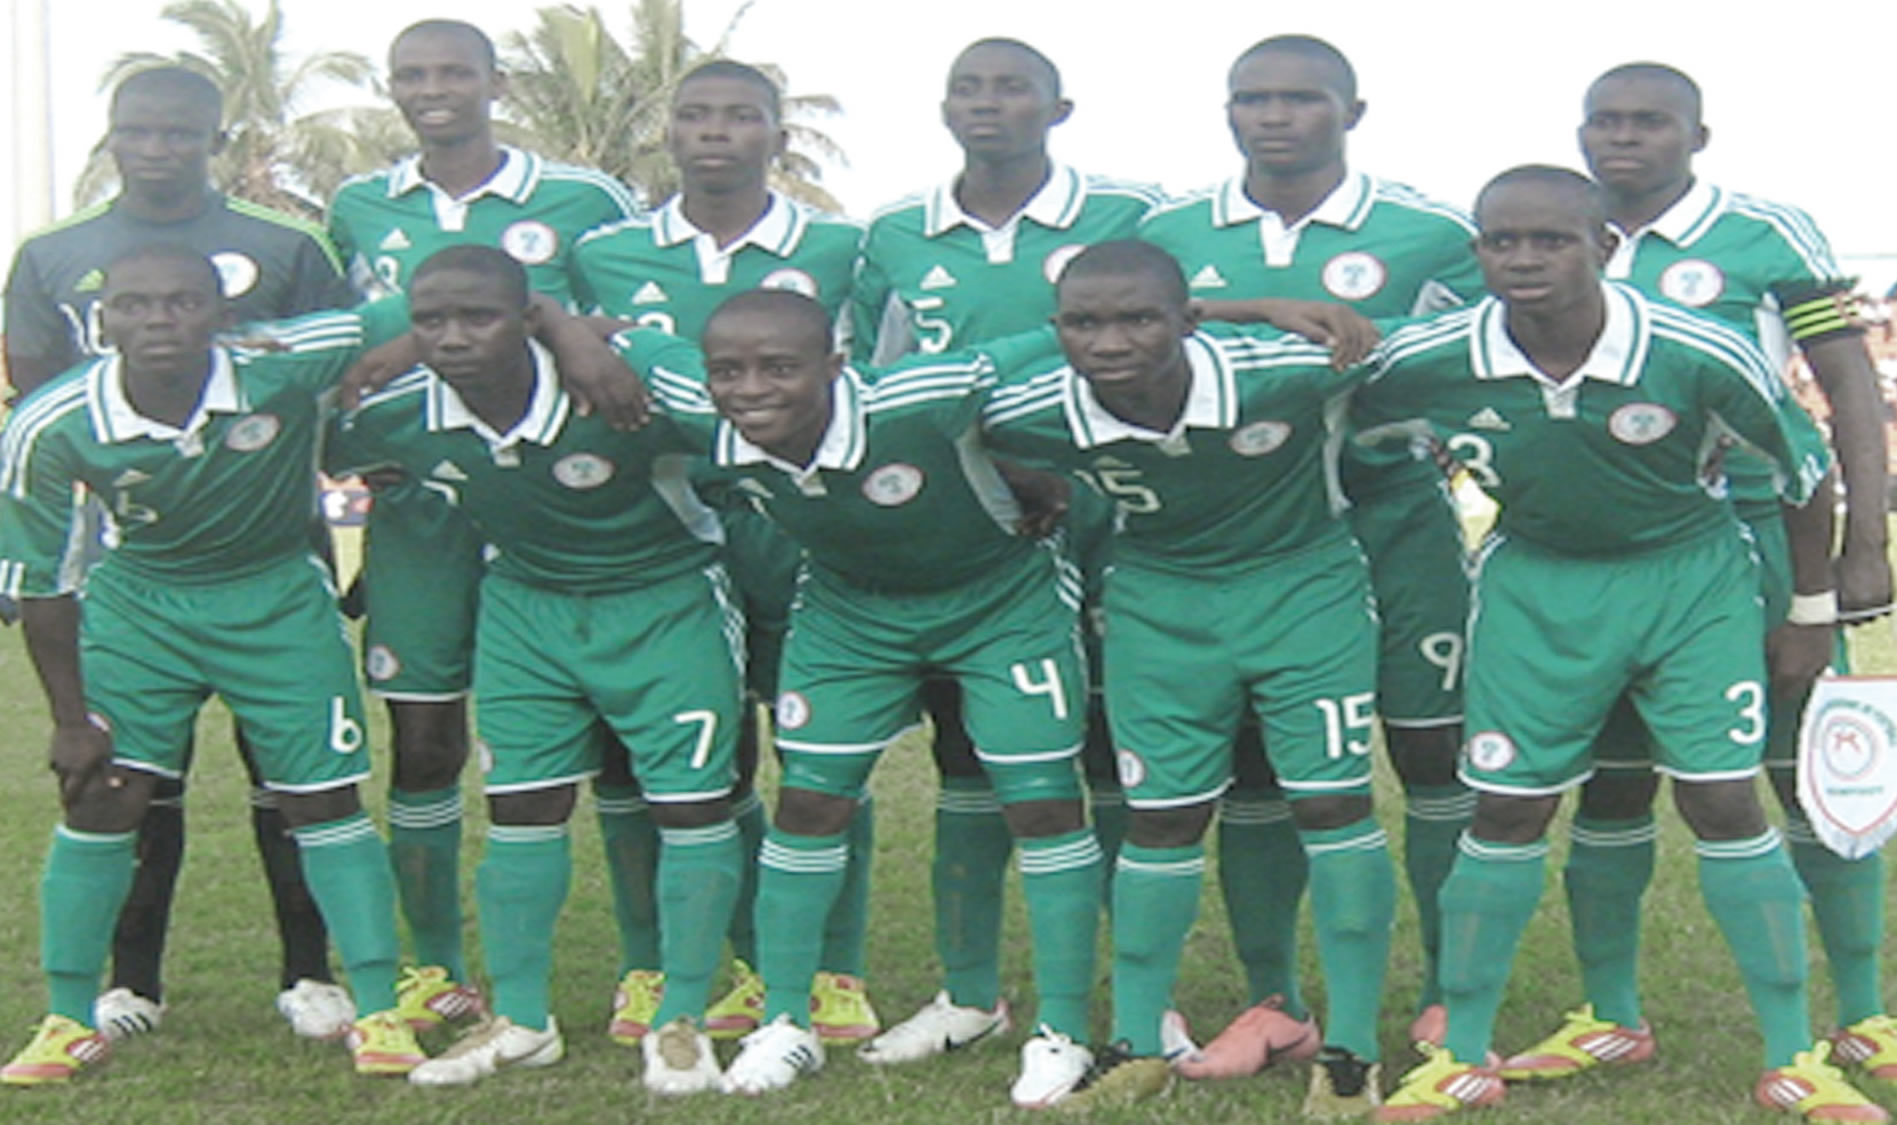 Golden Eaglets arrive Calabar July 22 for closed-camping ahead of 2013 world cup in UAE